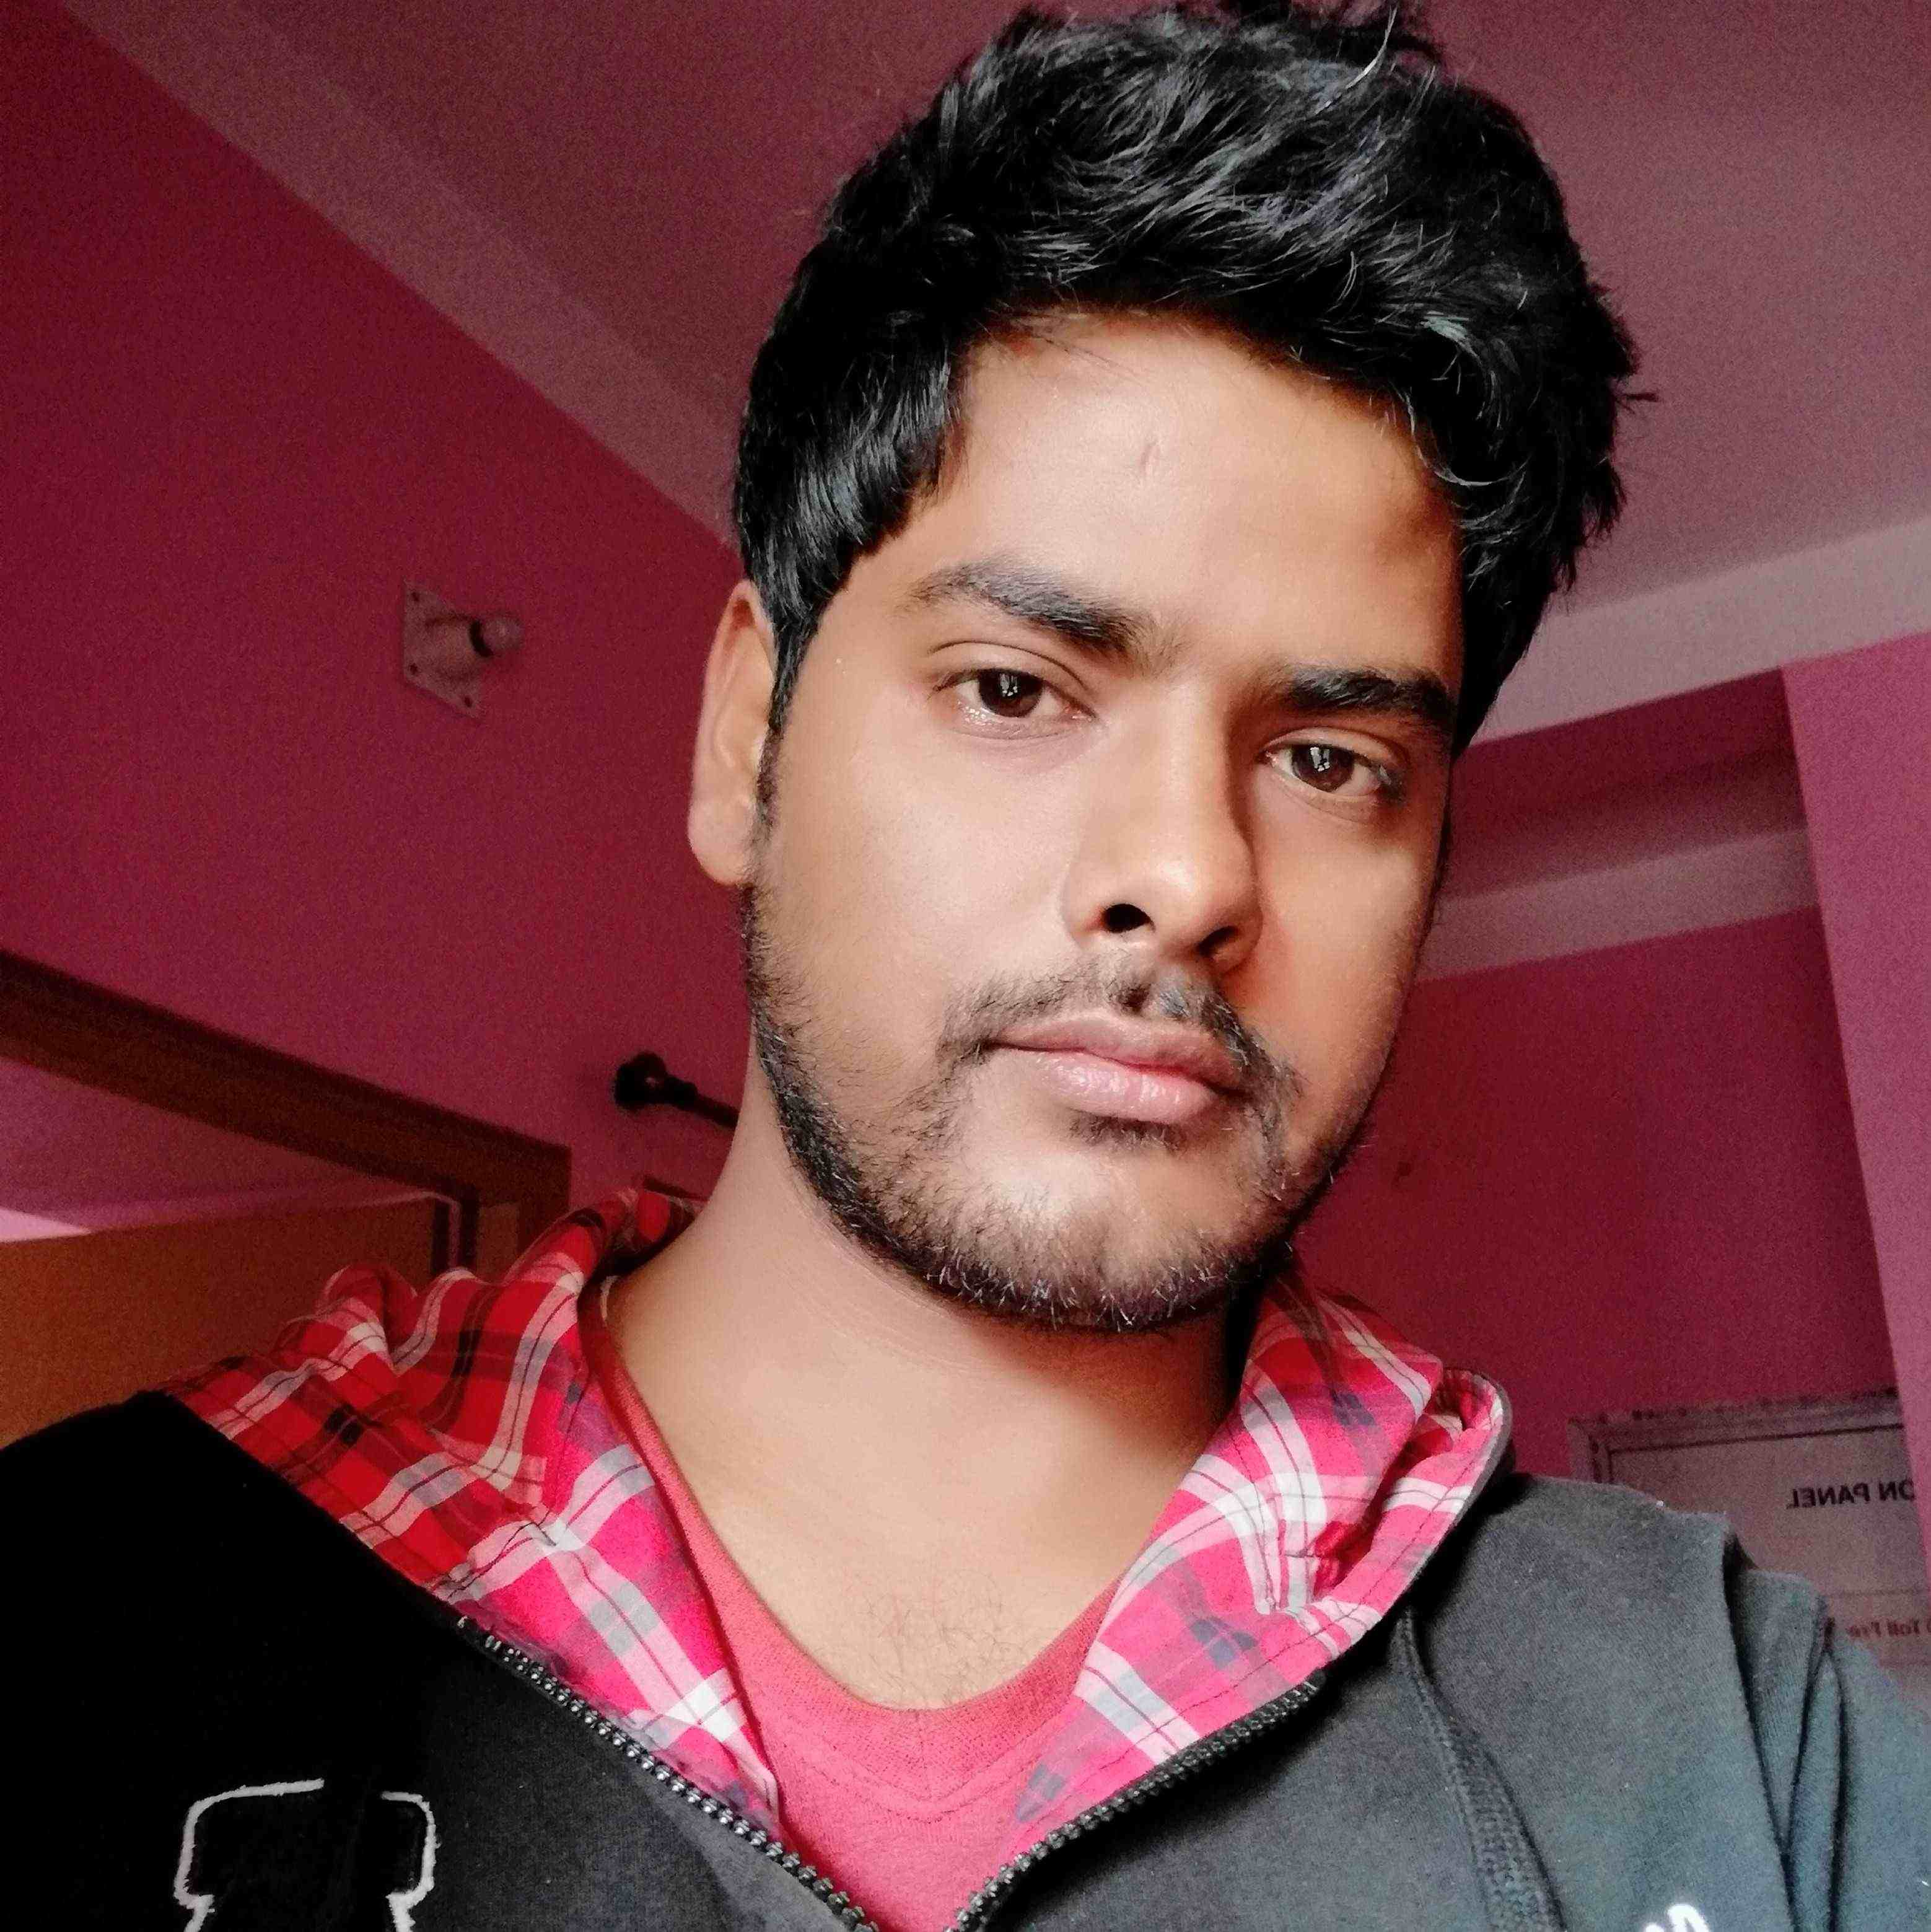 Vaibhav Sagar student by nature and writer by passion.